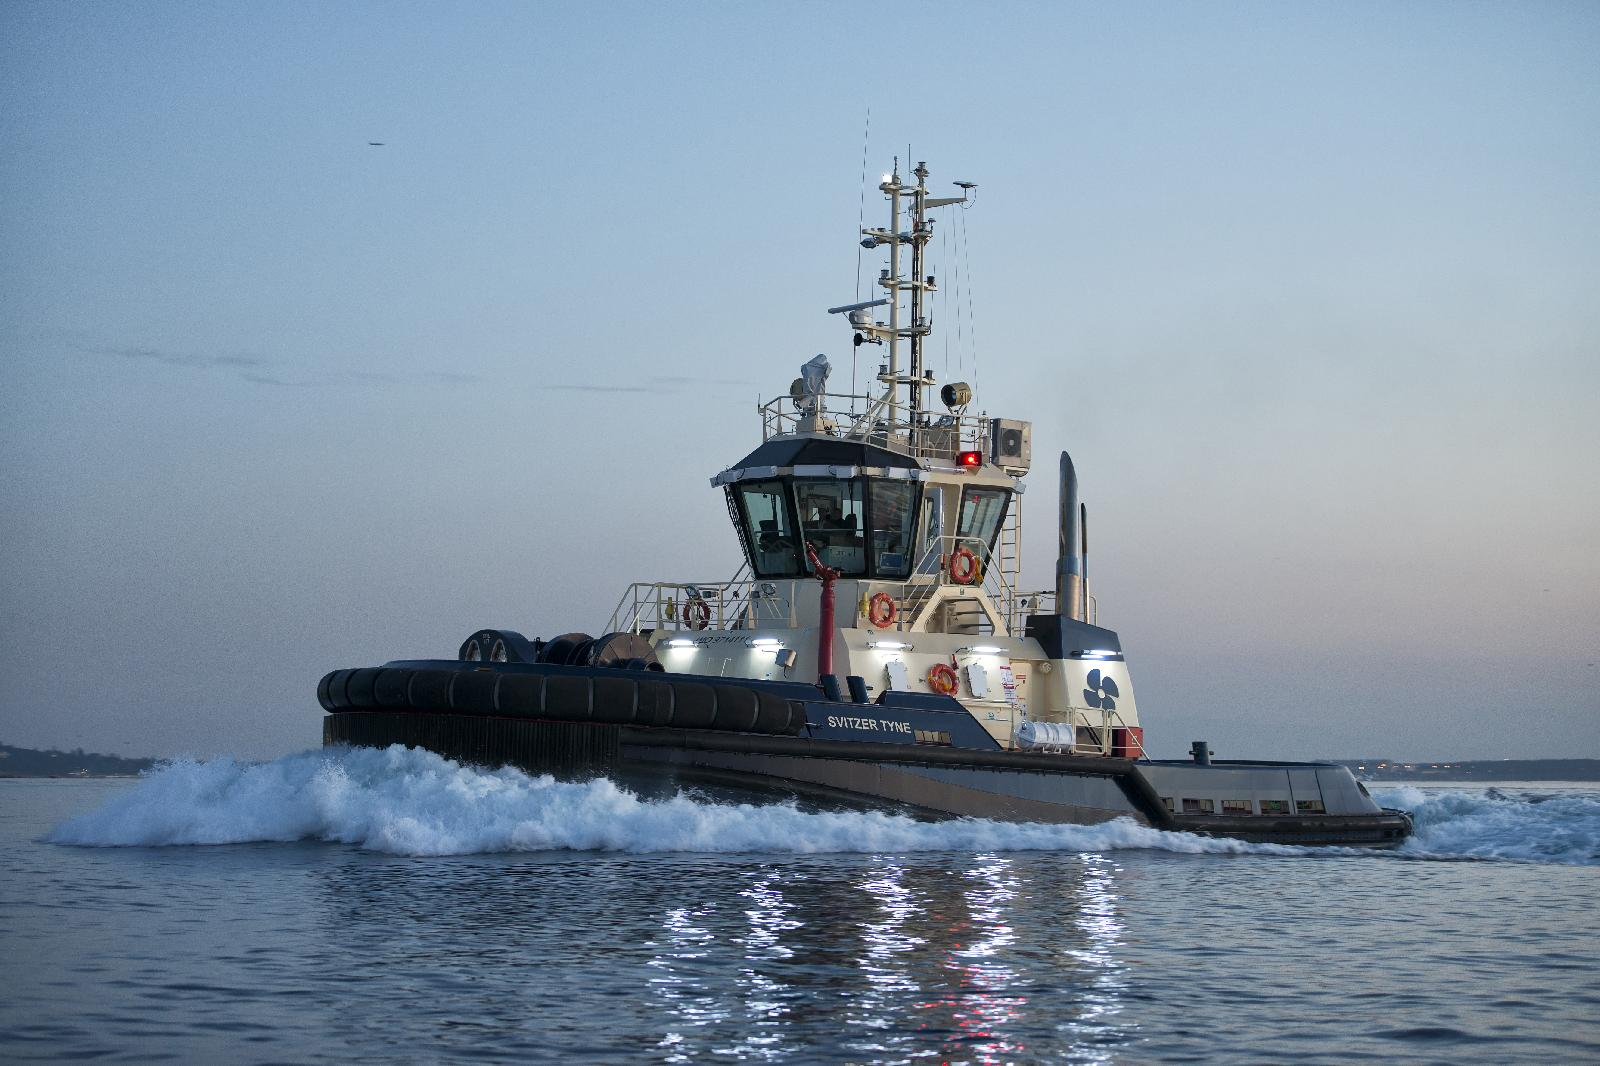 SANMAR DELIVERS THE SECOND TUGBOAT FOR SVITZER